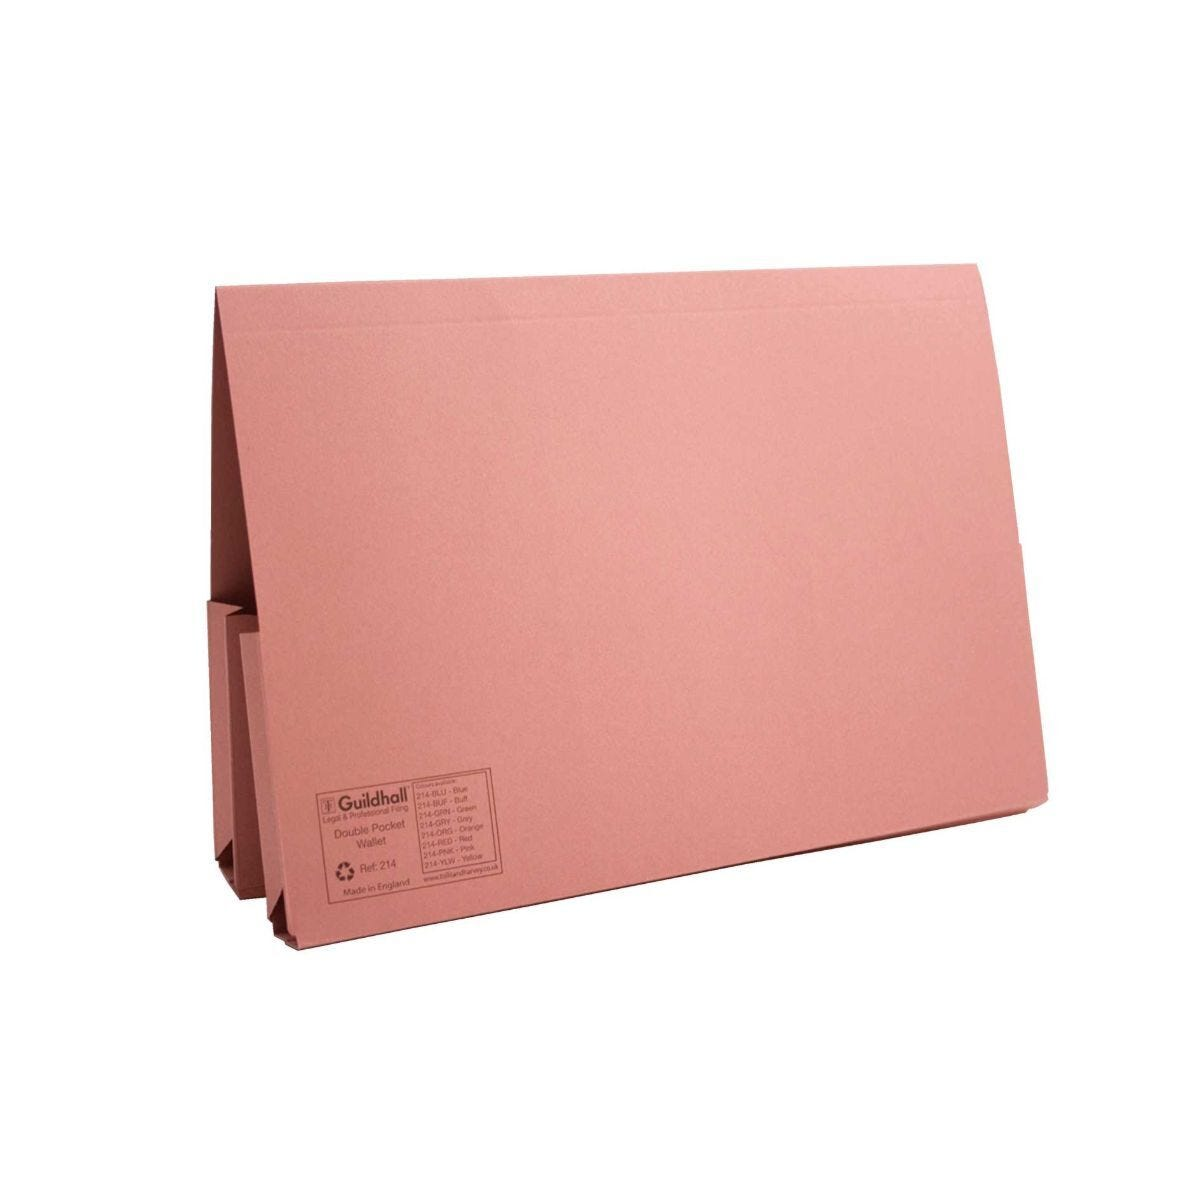 Guildhall Double Pocket Legal Wallets Foolscap 315gsm Pack of 25 Pink